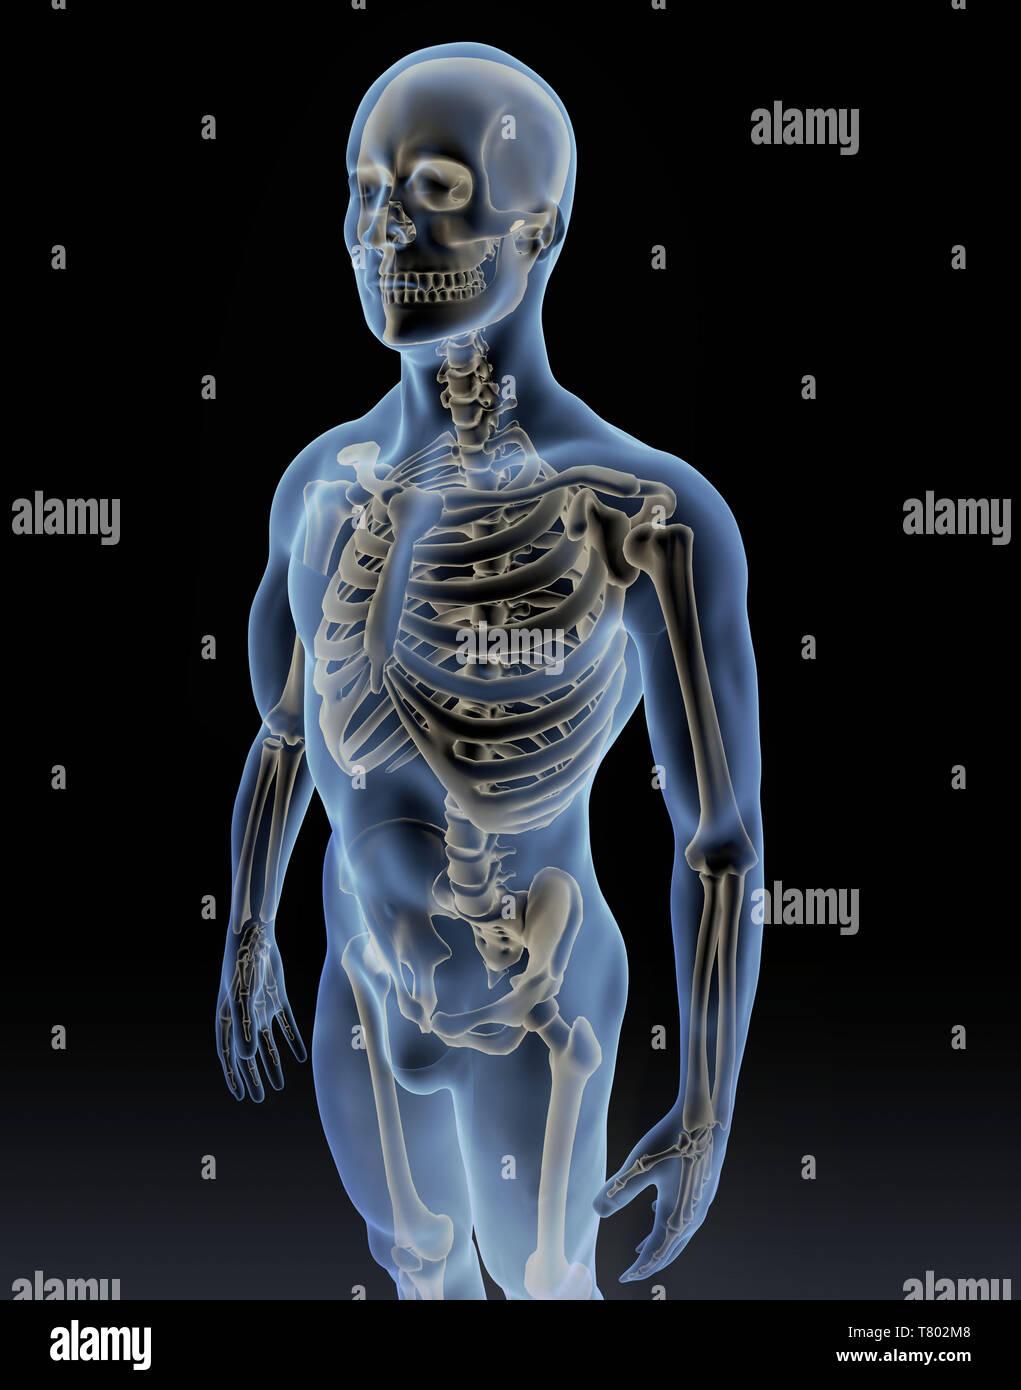 Man with Visible Skeleton, Illustration - Stock Image